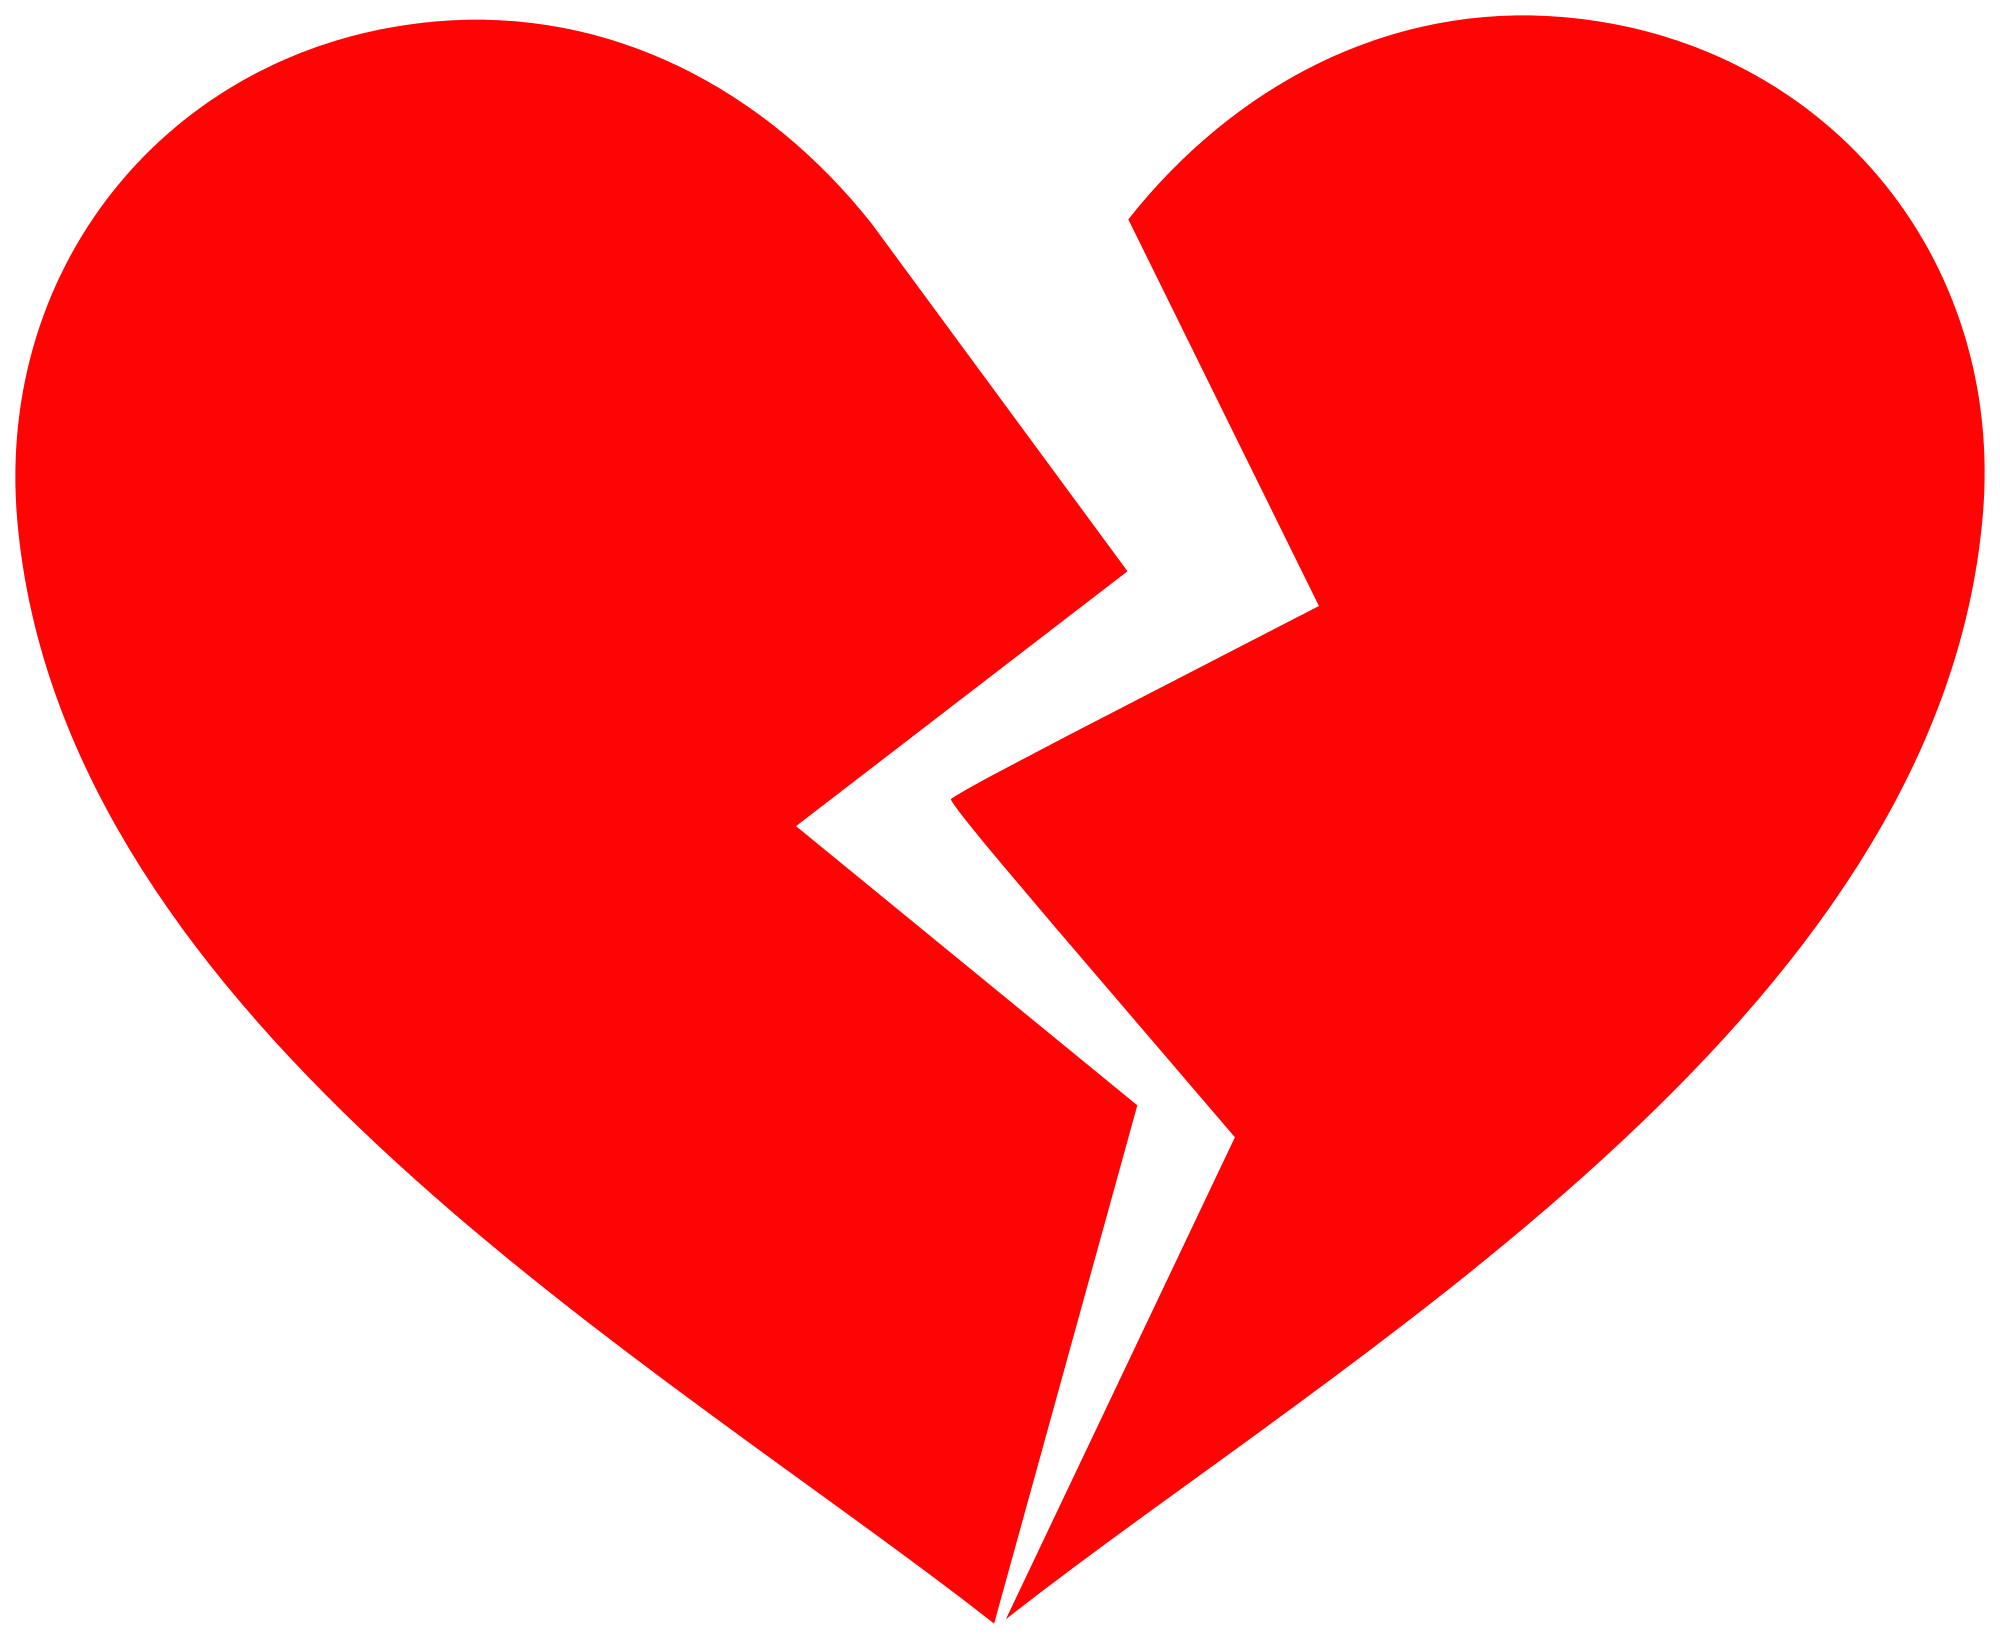 Broken heart syndrome can. Patient clipart medical condition